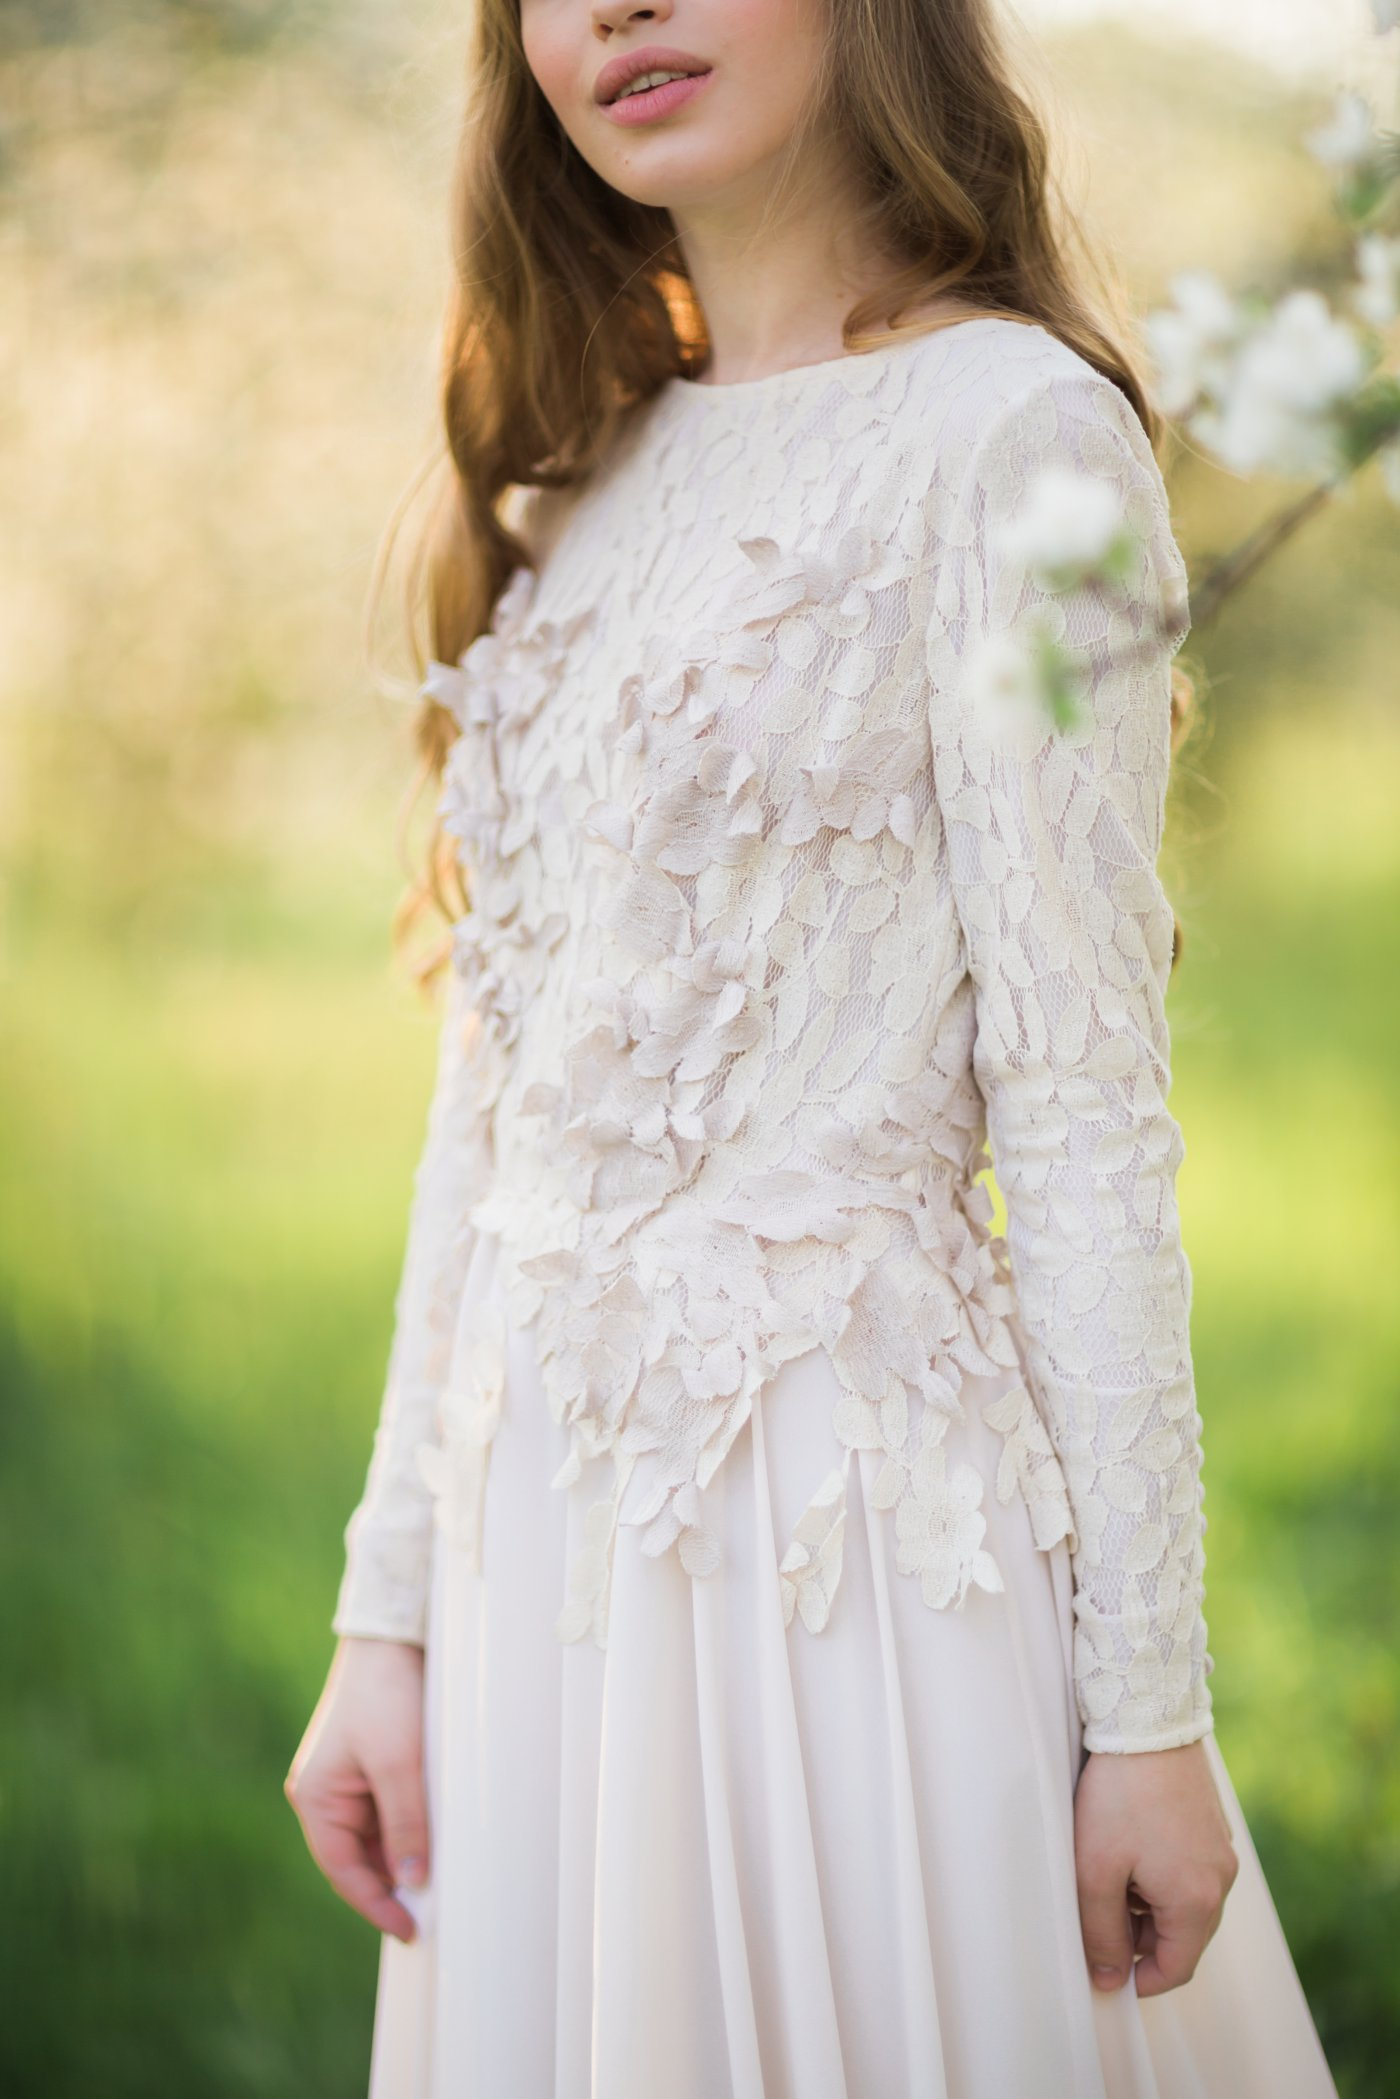 High Neck Wedding Dress With Long Sleeve And Lace Appliques Floating Down The Bodice